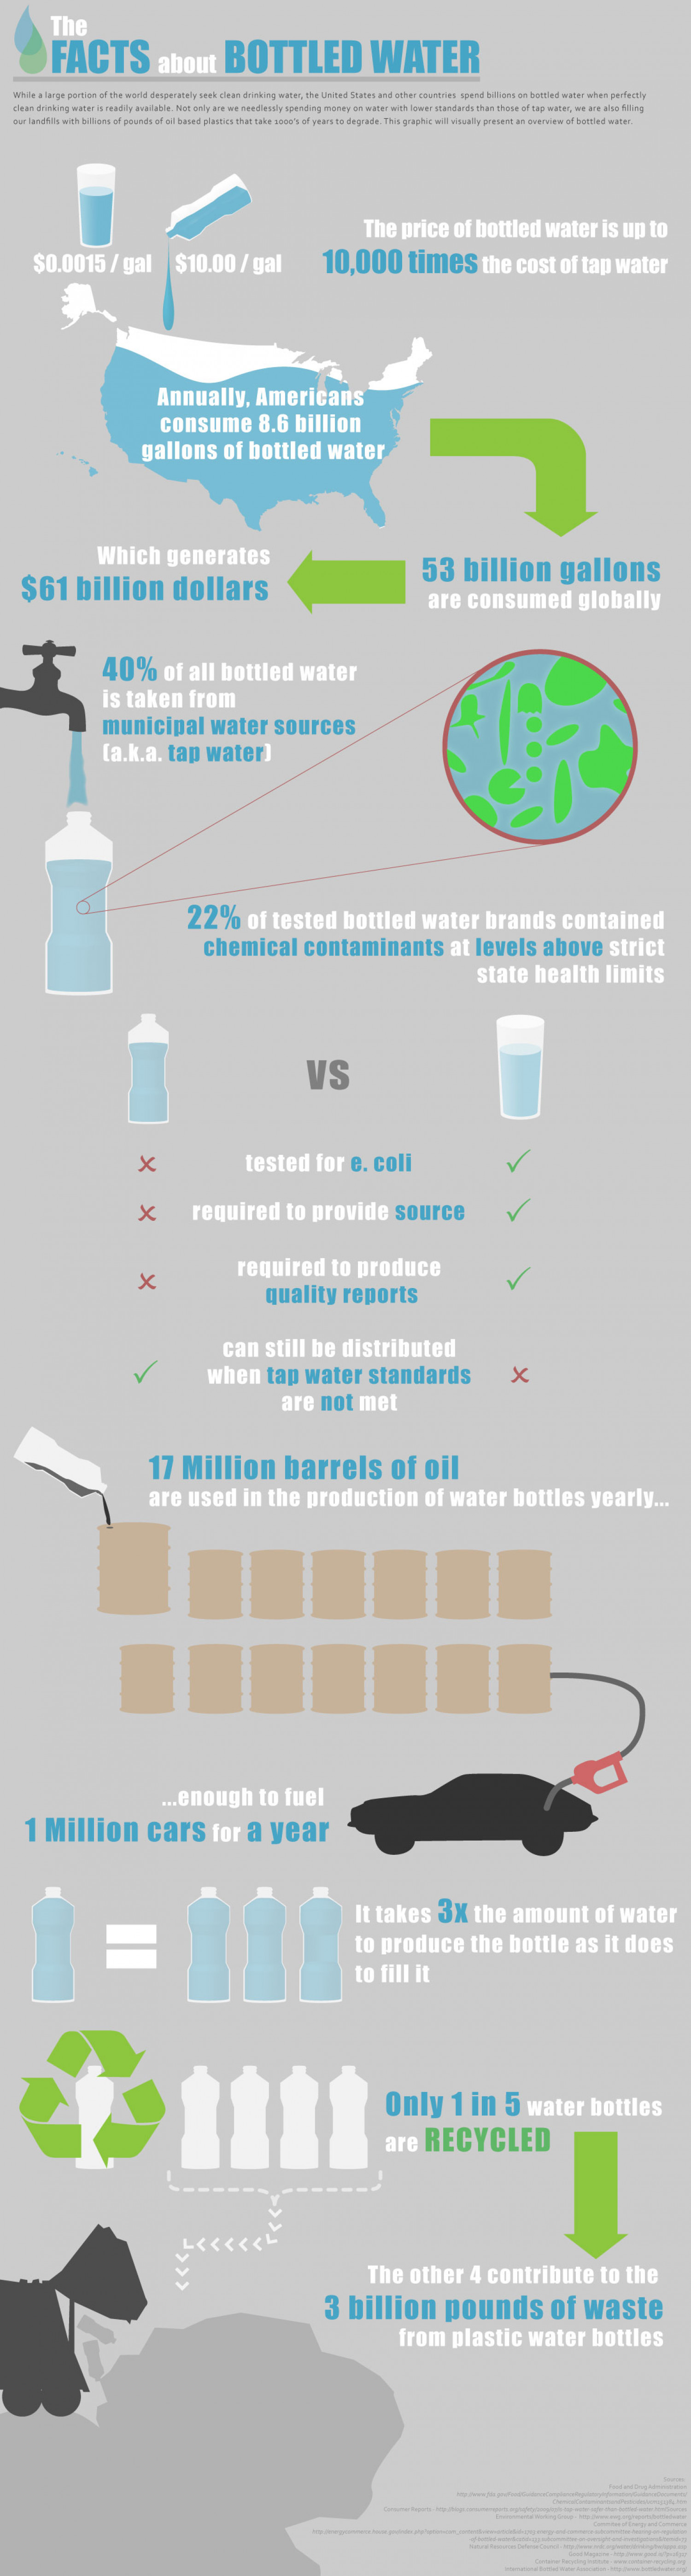 The Facts About Bottled Water Infographic